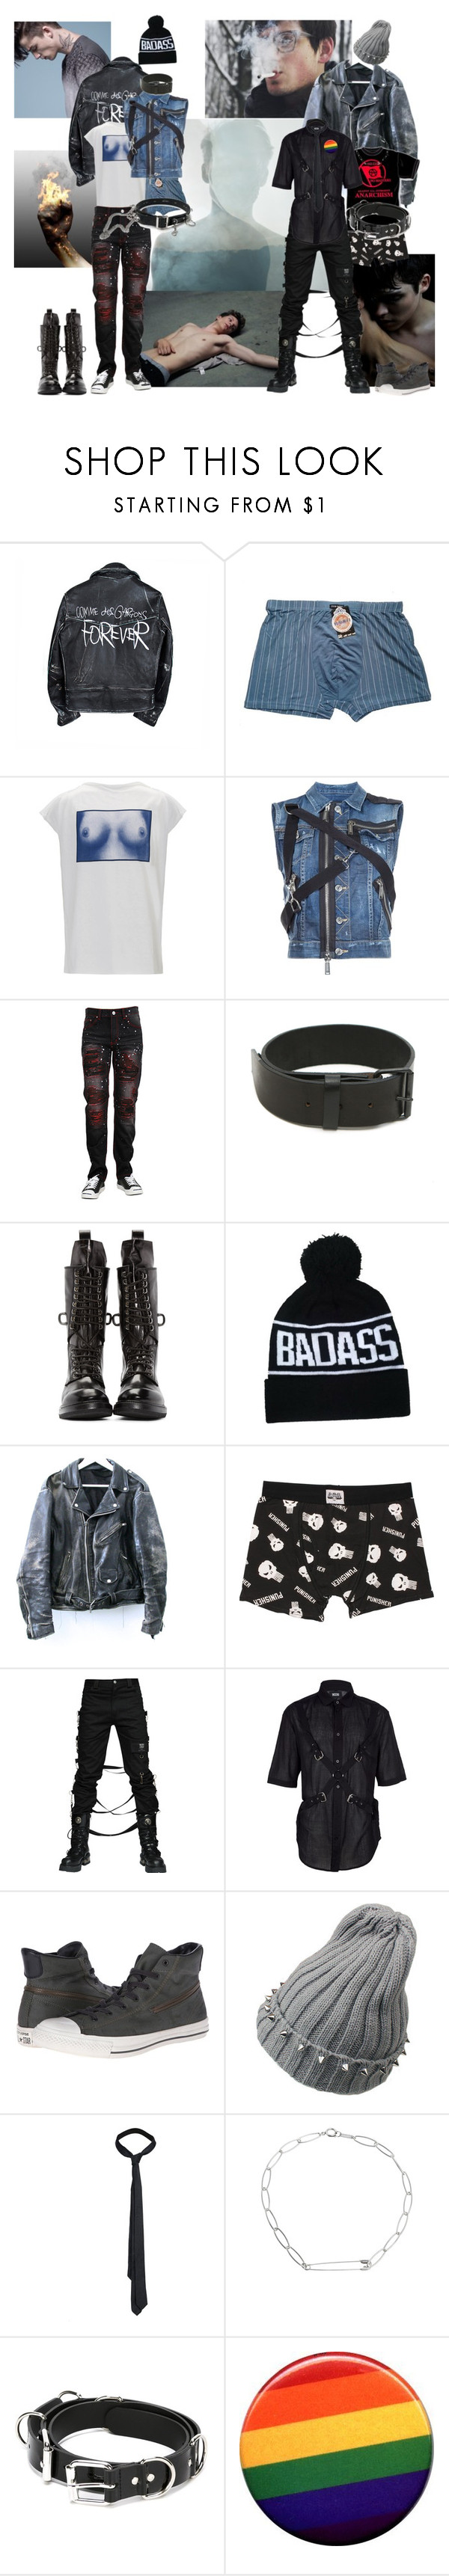 """I Remember a Rooftop"" by verysmallgoddess ❤ liked on Polyvore featuring Comme des Garçons, Dsquared2, 99%IS, Rick Owens, Marvel Comics, Kokon To Zai, John Varvatos, AllSaints, Isabel Marant and Filles à papa"